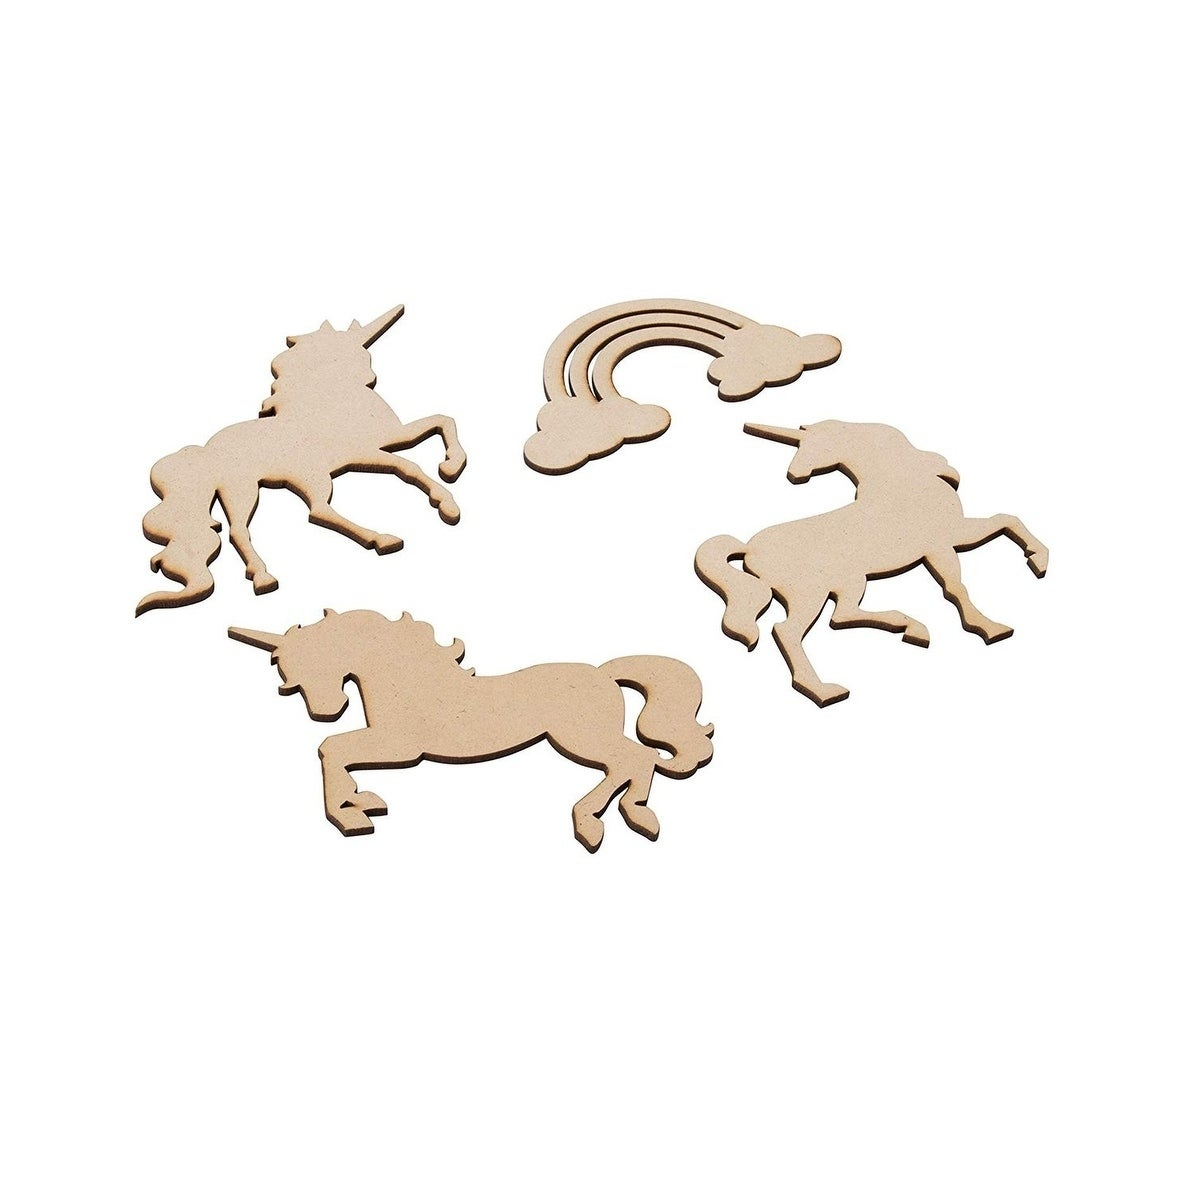 24-Pack Wood Cutouts 4 Unfinished Wooden Unicorns and Rainbow Shapes for Crafts